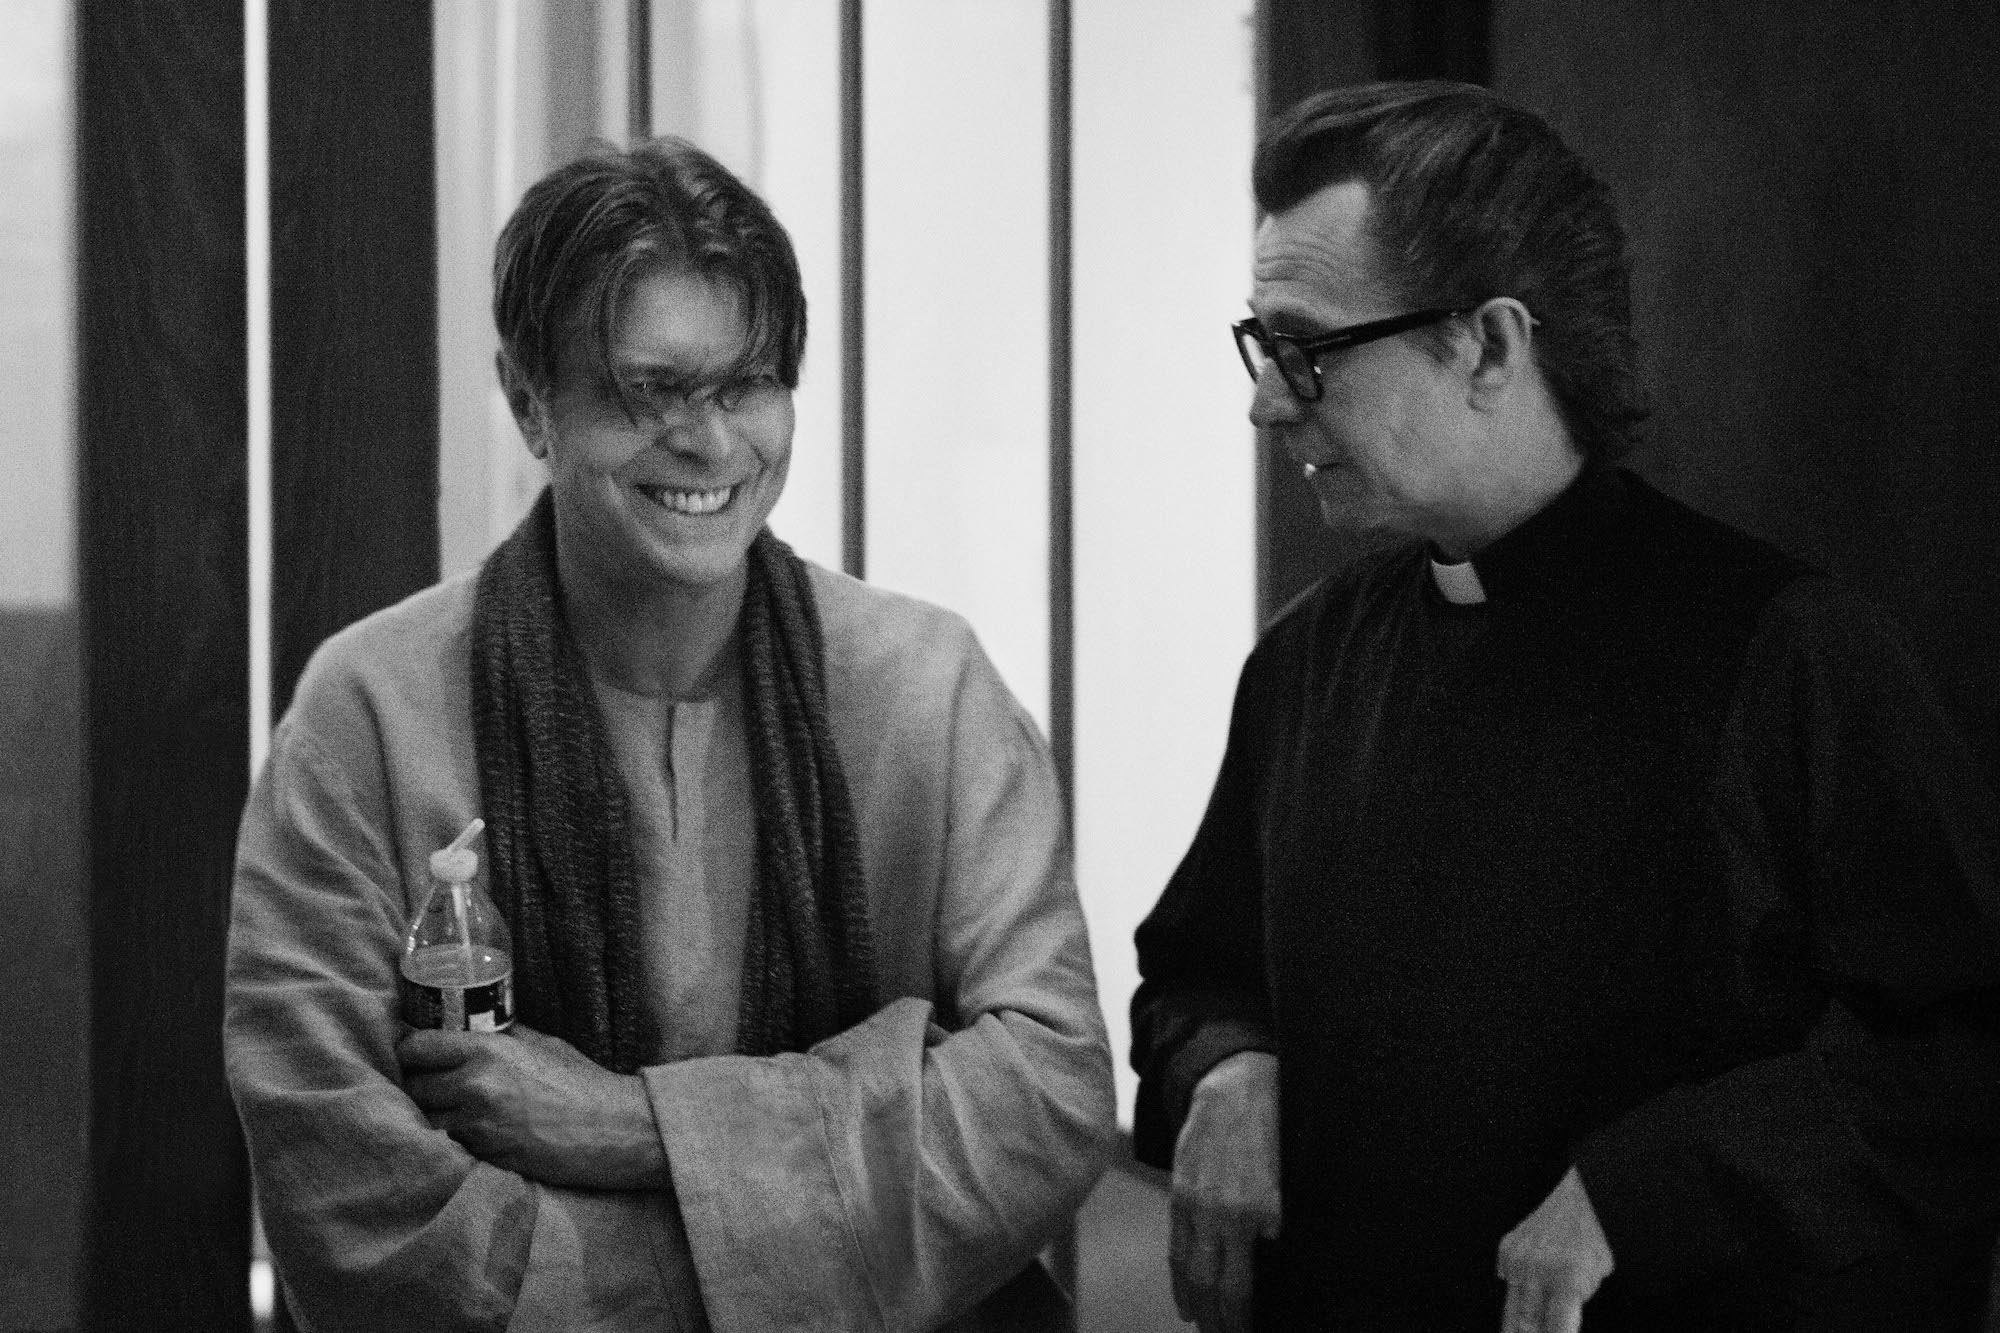 David Bowie and Gary Oldman